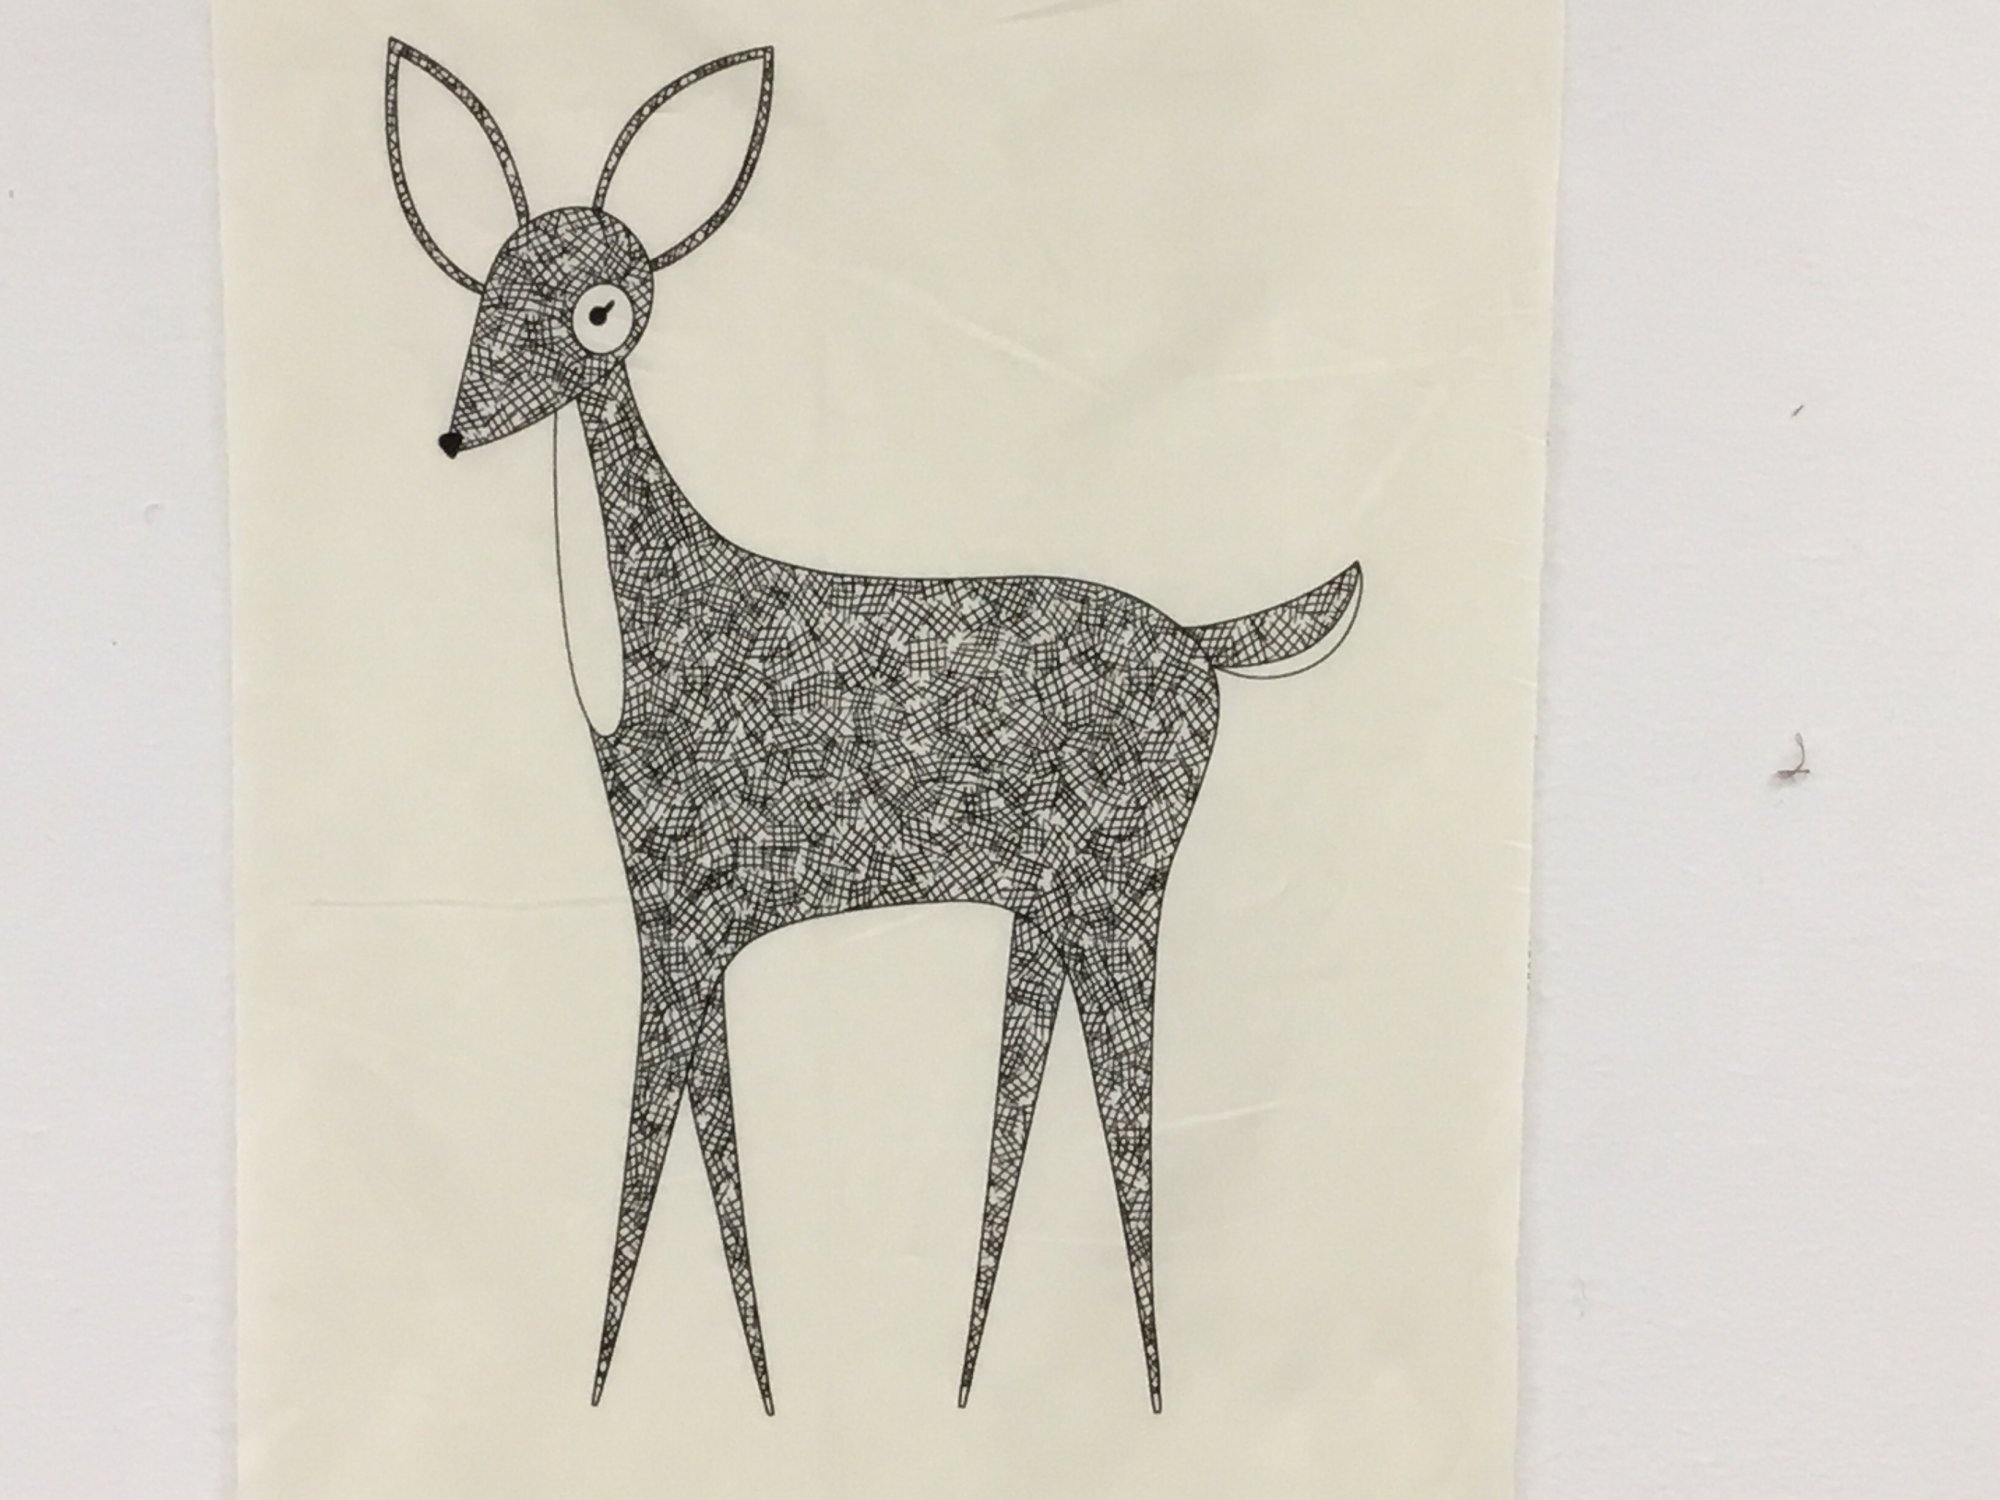 BRAMBLE DEER PANEL (20.5 X 21 INCHES) - GINGIBER by Moda